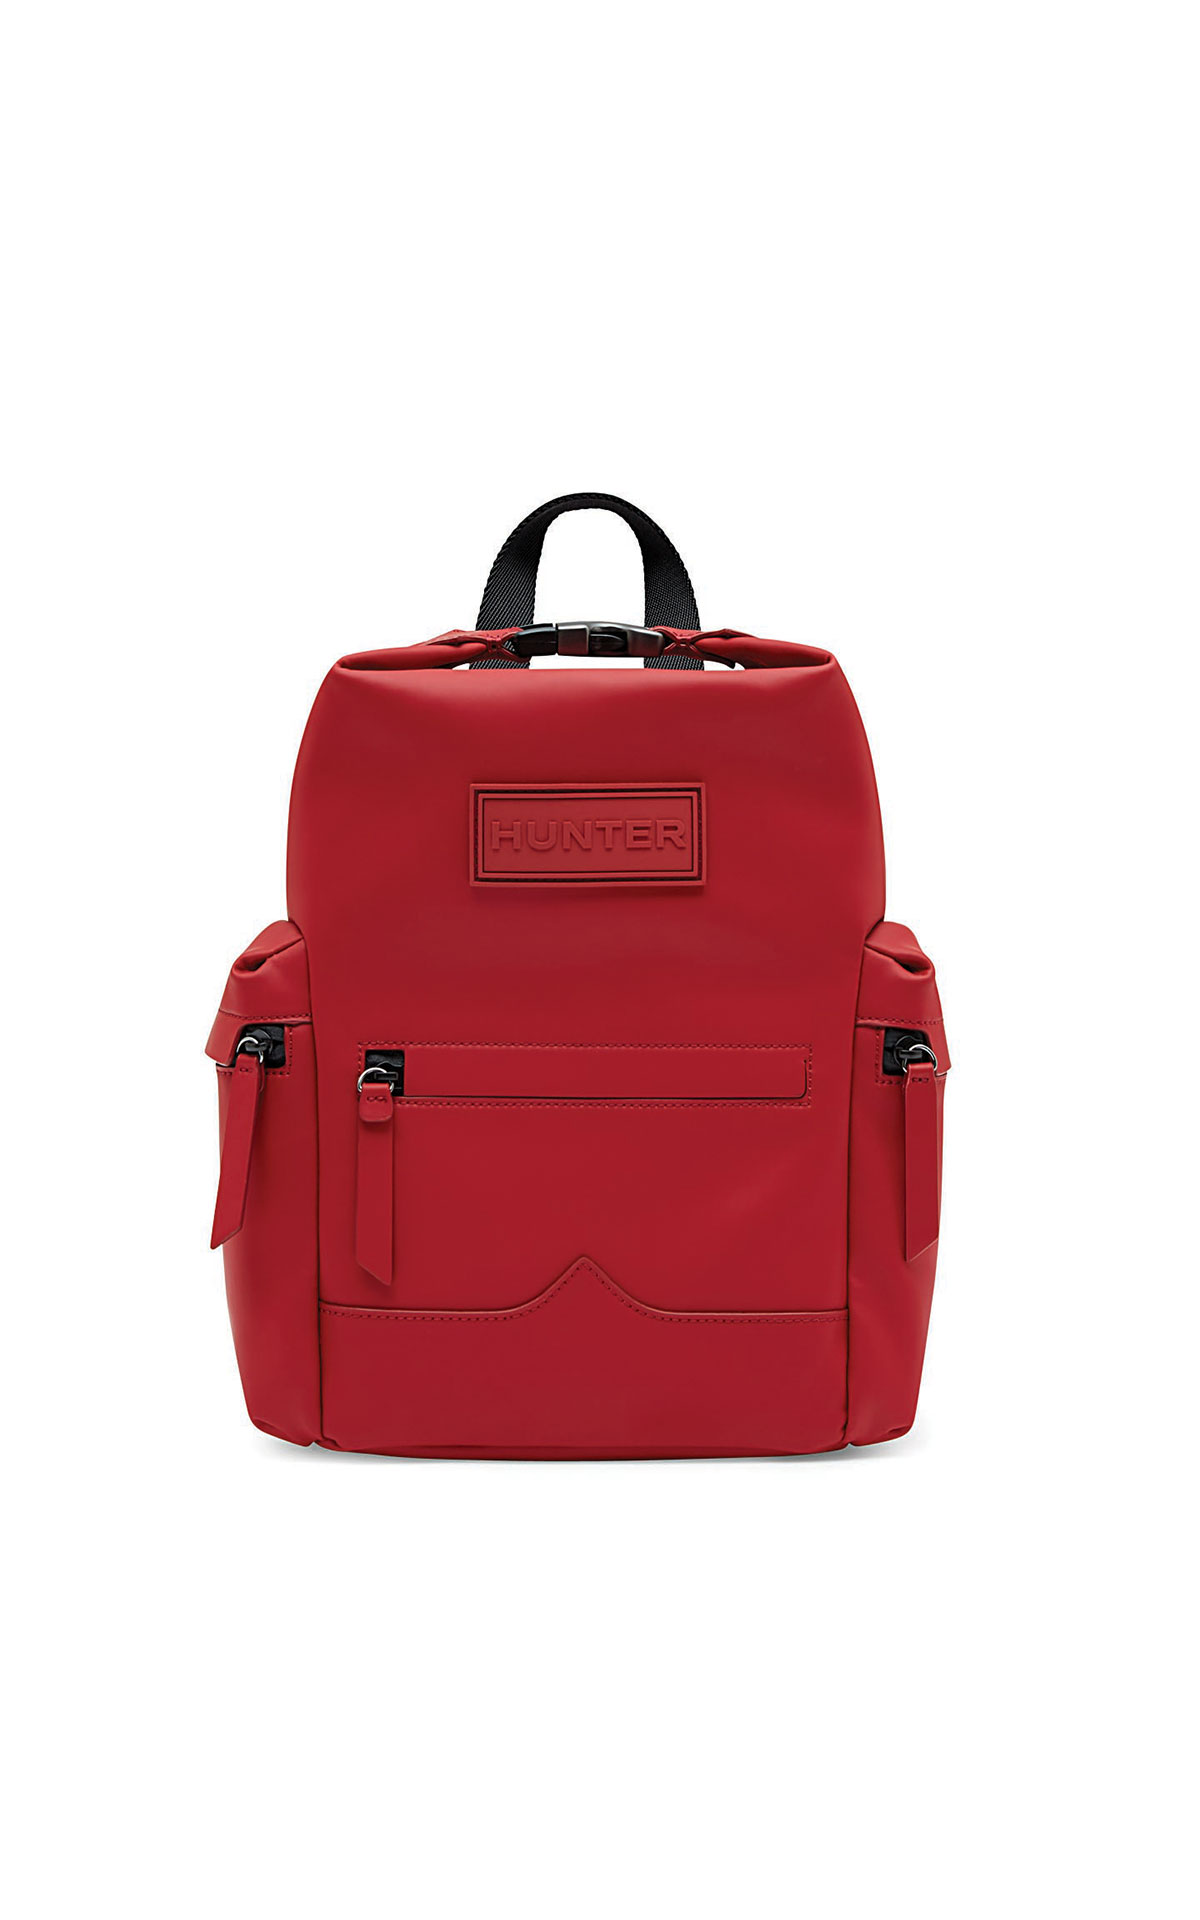 Hunter Original m topclip backpack rub lth military red from Bicester Village